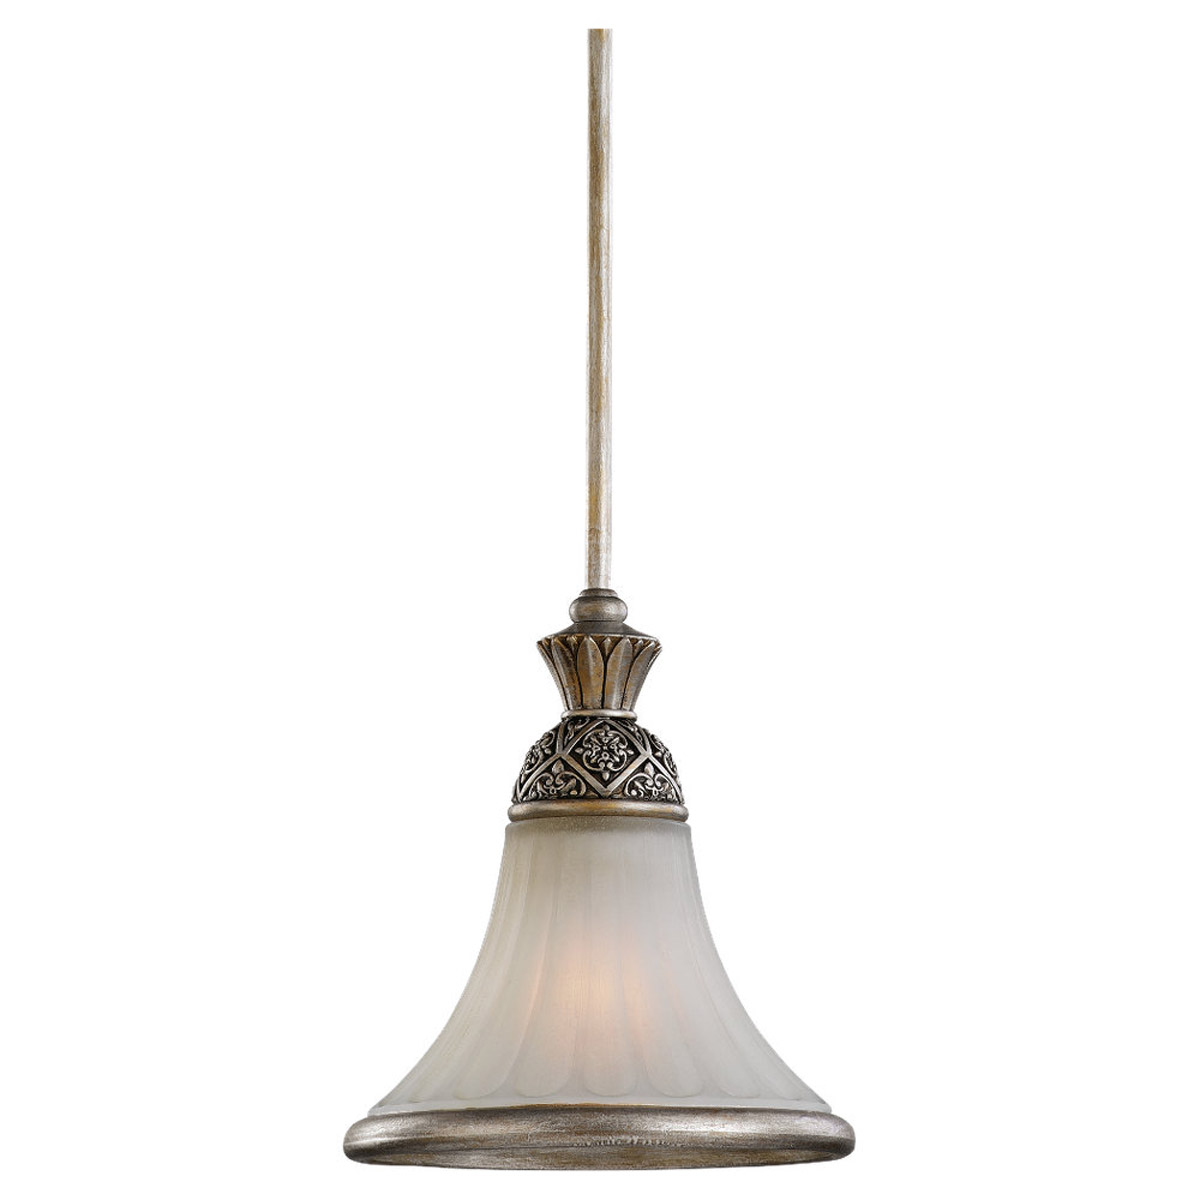 Sea Gull Lighting Highlands 1 Light Mini Pendant in Palladium 61251-824 photo